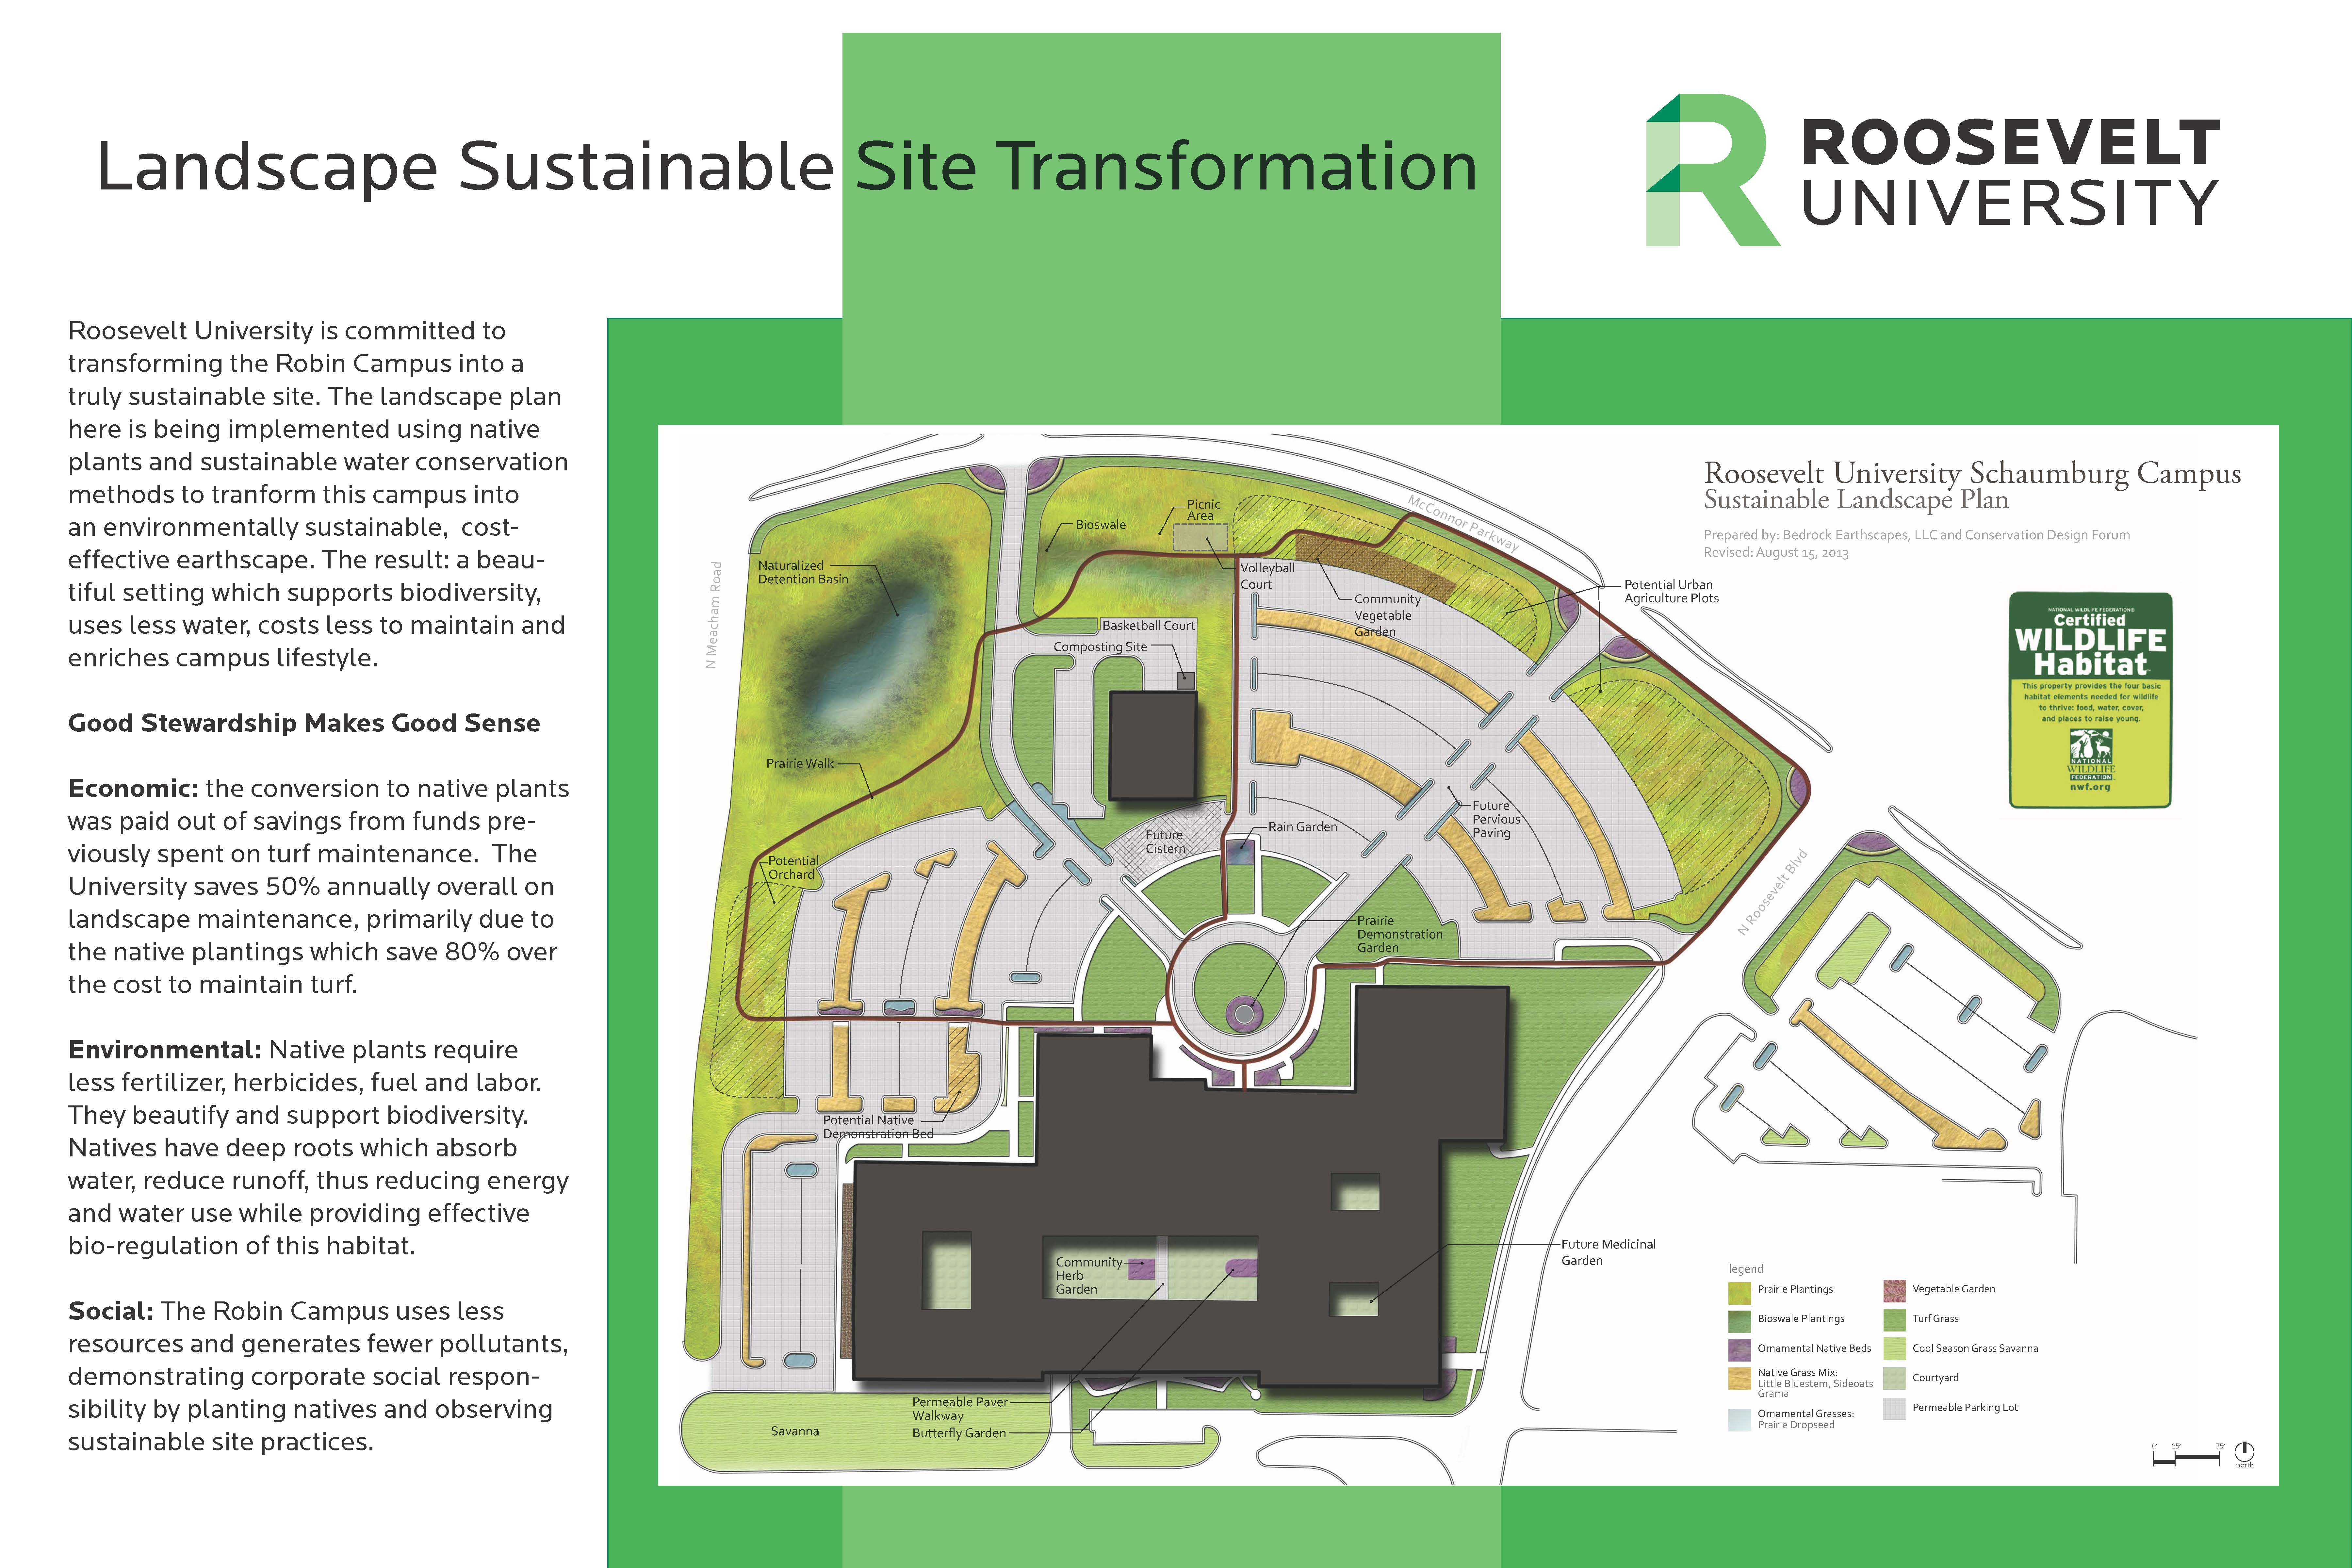 Roosevelt University Campus Map.Earth Week Events At Ru S Schaumburg Campus Sustainability Studies